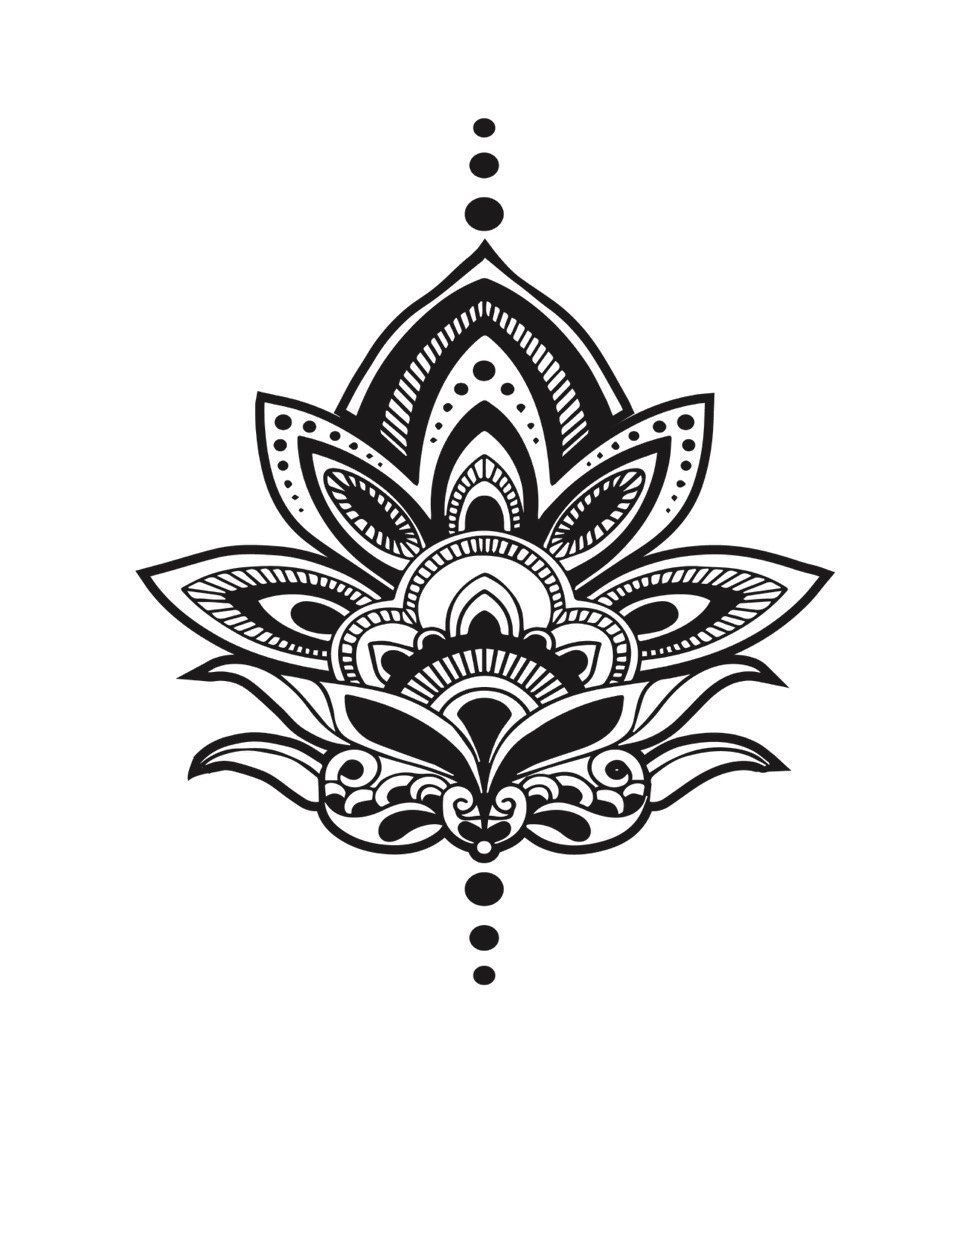 Mytat Henna Lotus Tattoo Buy Best Lotus Flower Tattoo Black Realistic Lotusflowertattoos Boho Tattoos Geometric Flower Tattoo Henna Lotus Tattoo